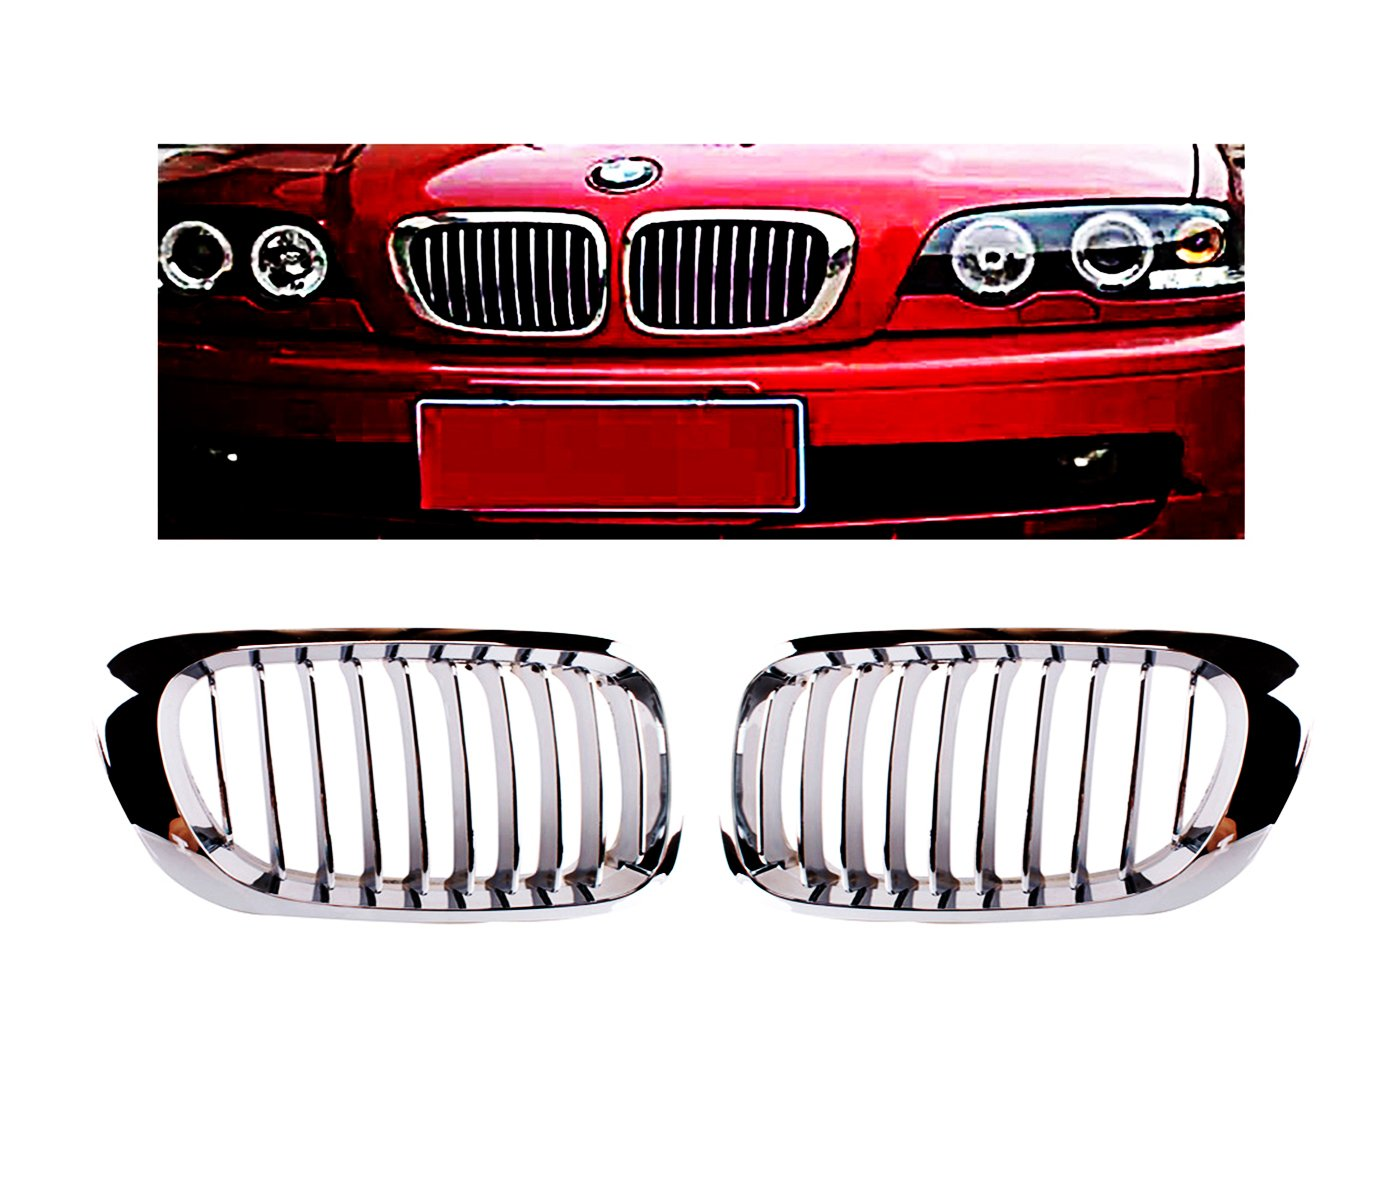 hight resolution of get quotations heart horse front kidney grille grill for 1999 2001 bmw 3 series e46 m3 323i